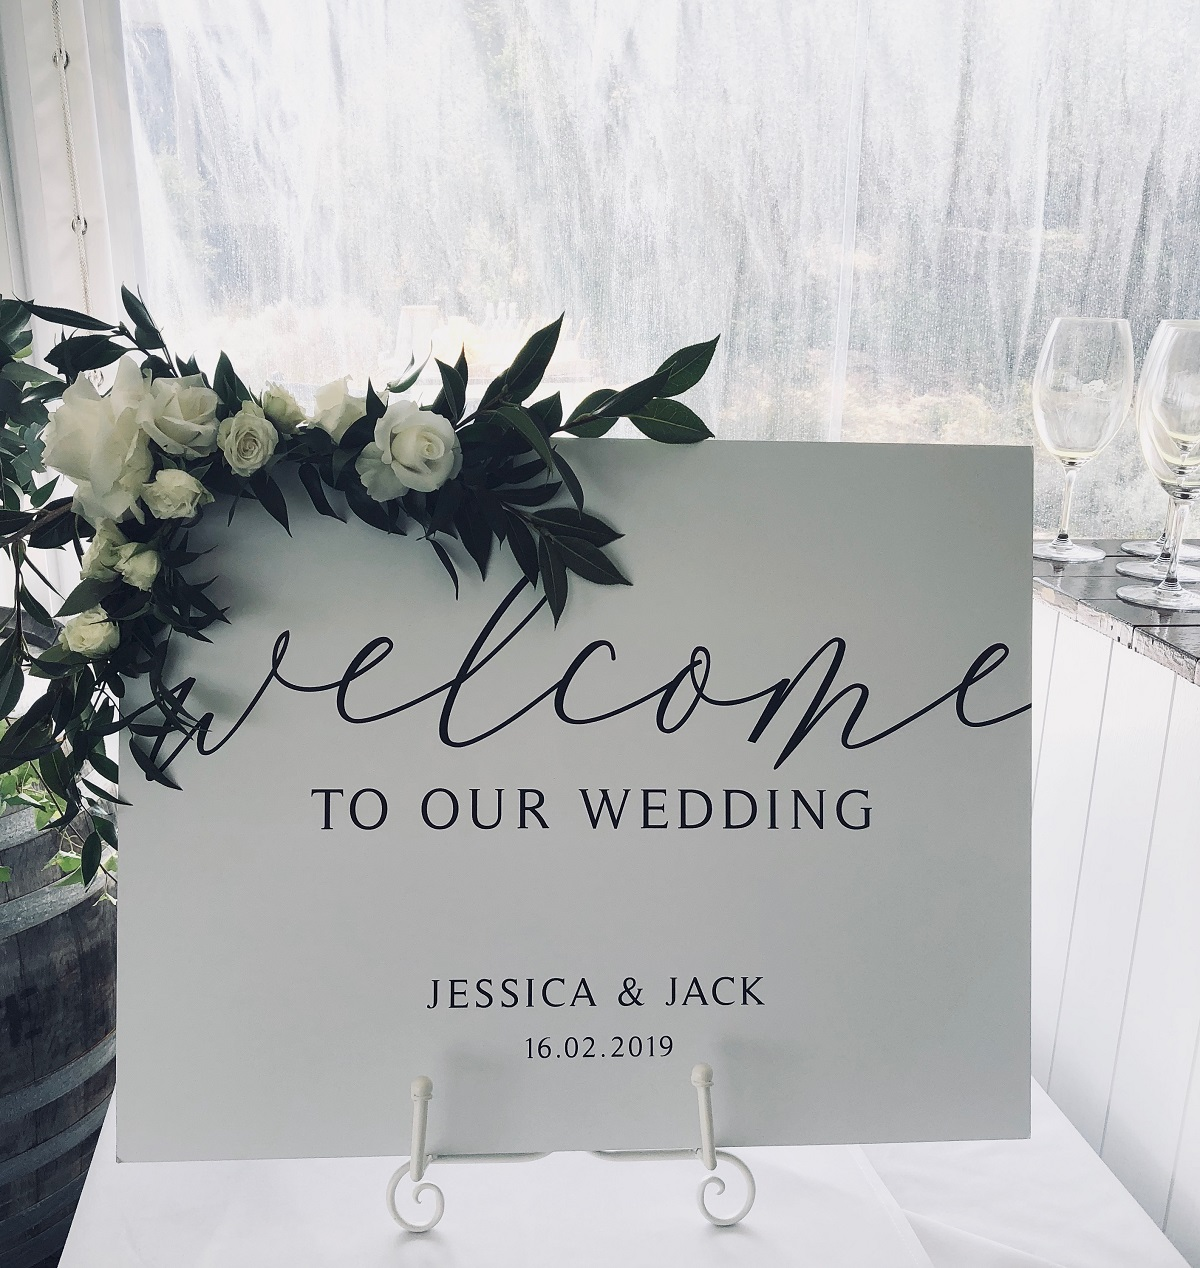 Elegant and classic welcome sign.JPG